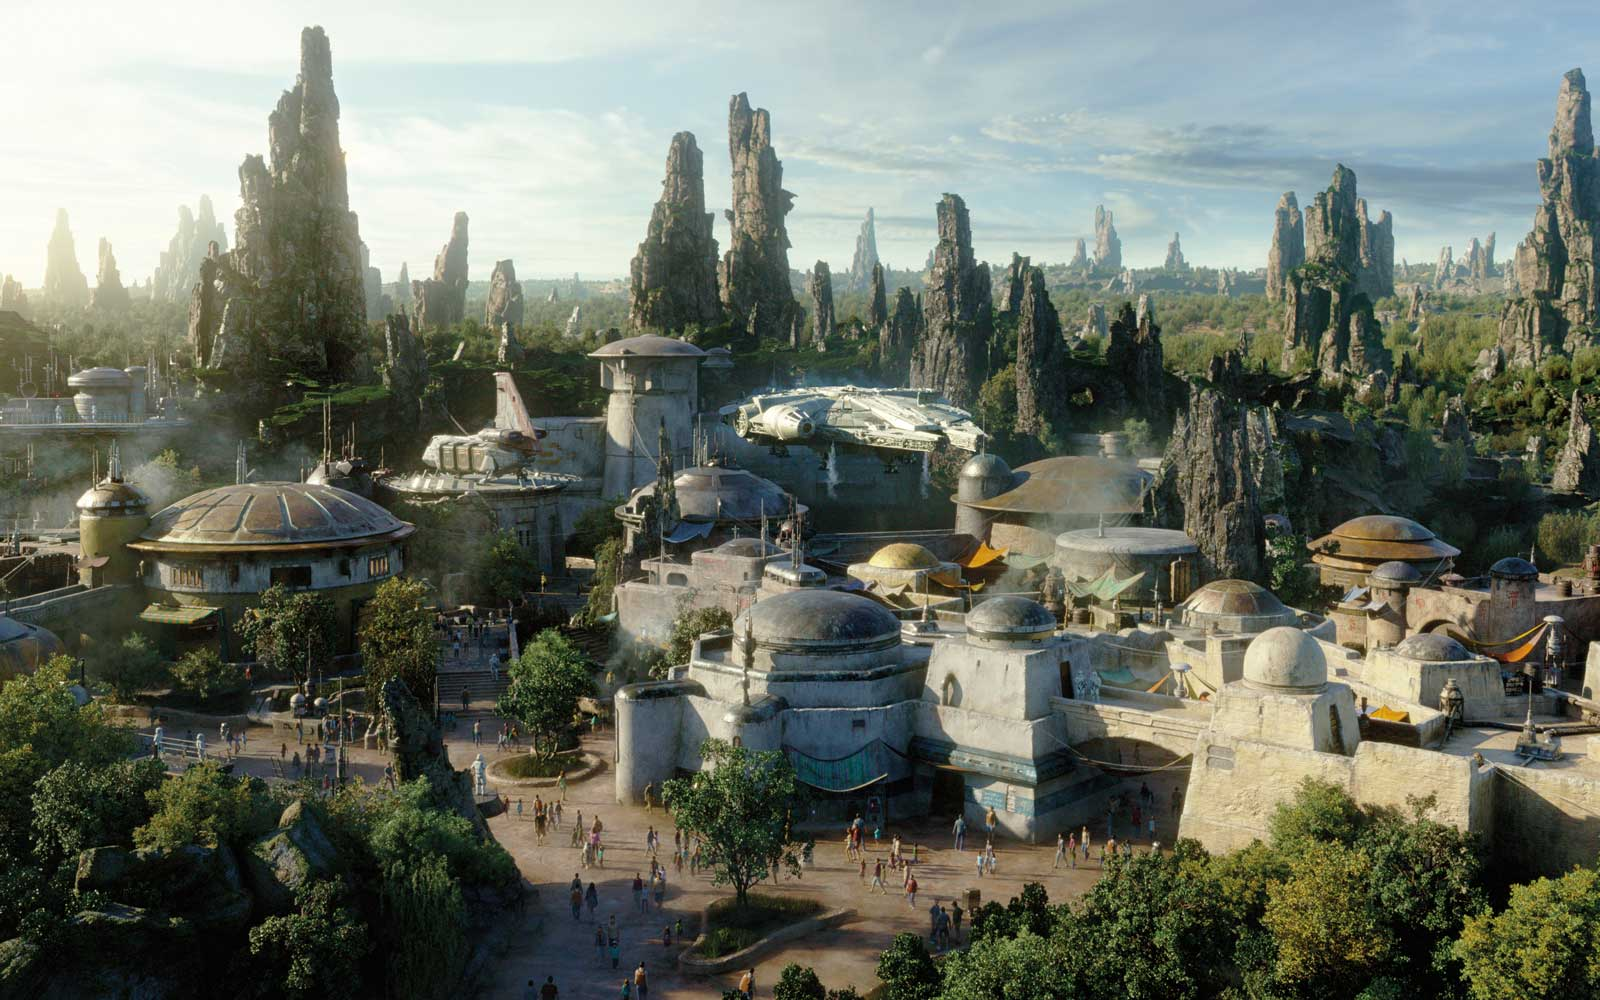 Aerial Photos Show Disney World's Star Wars Land Nearly Finished Ahead of Opening Day